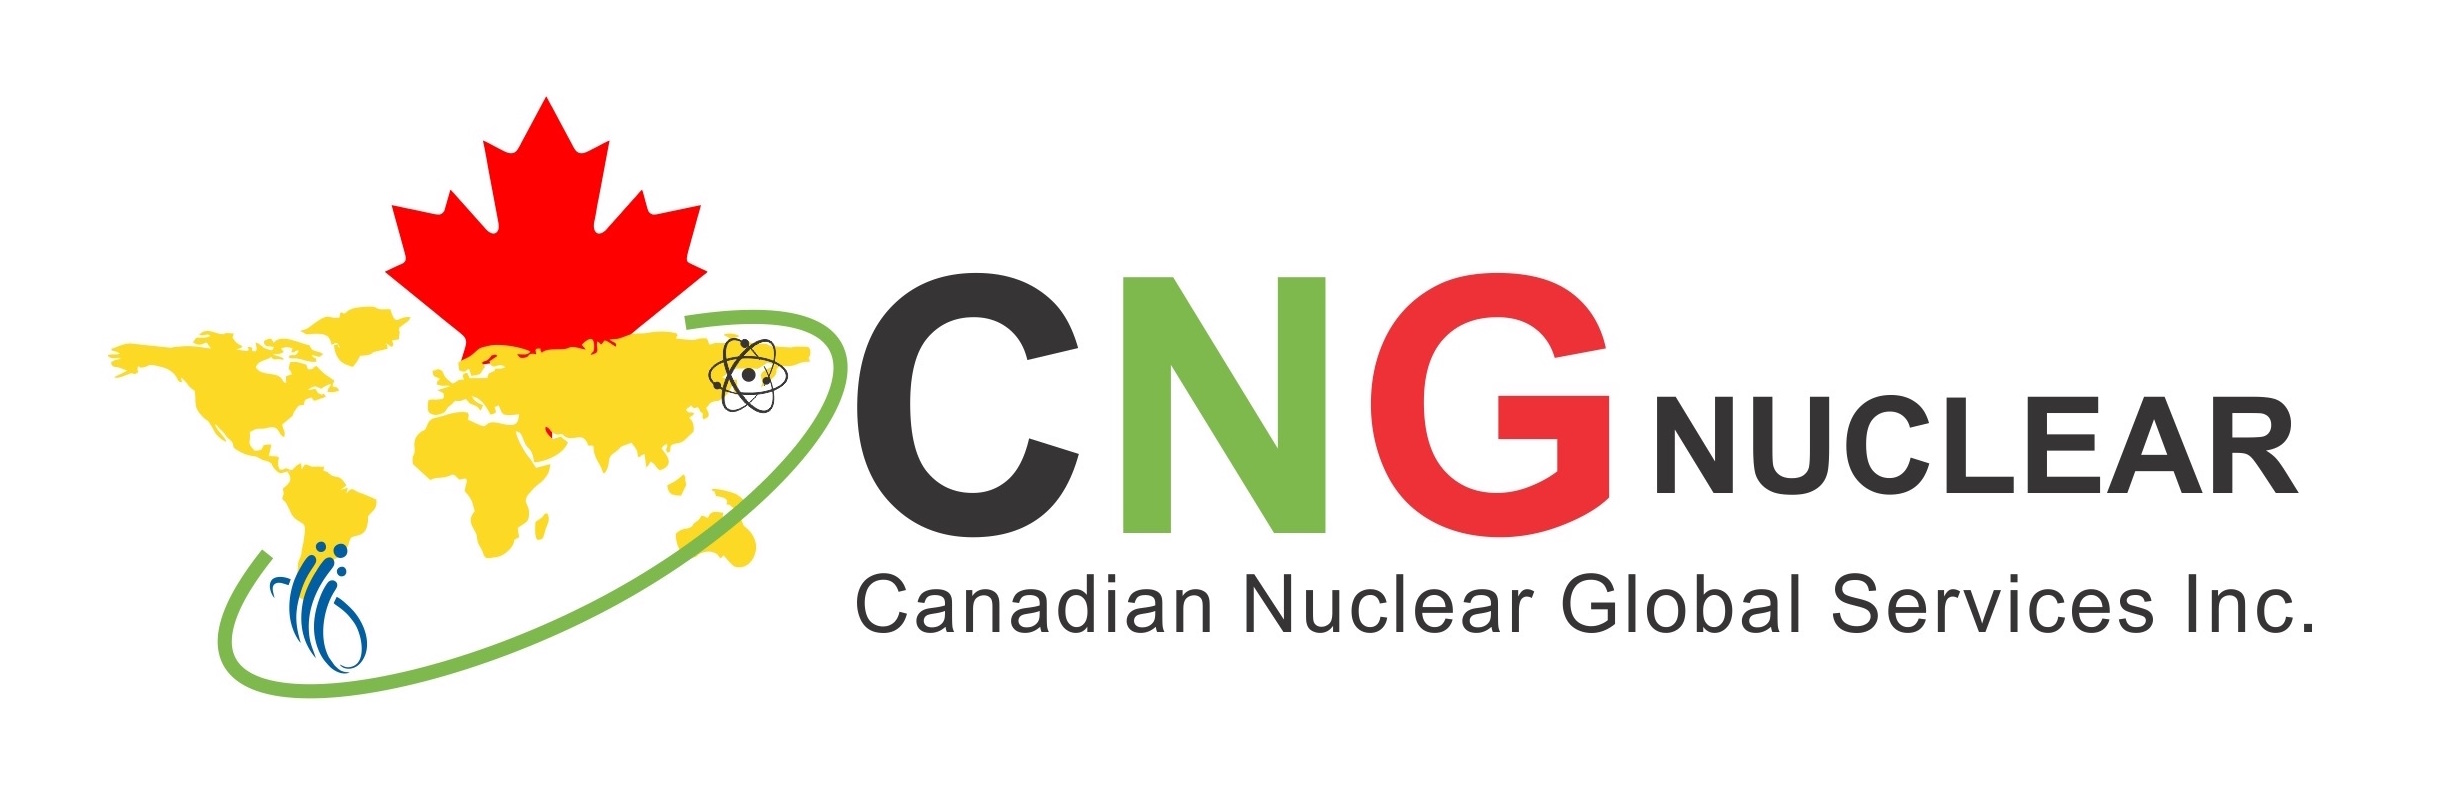 Canadian Nuclear Global Services Inc.